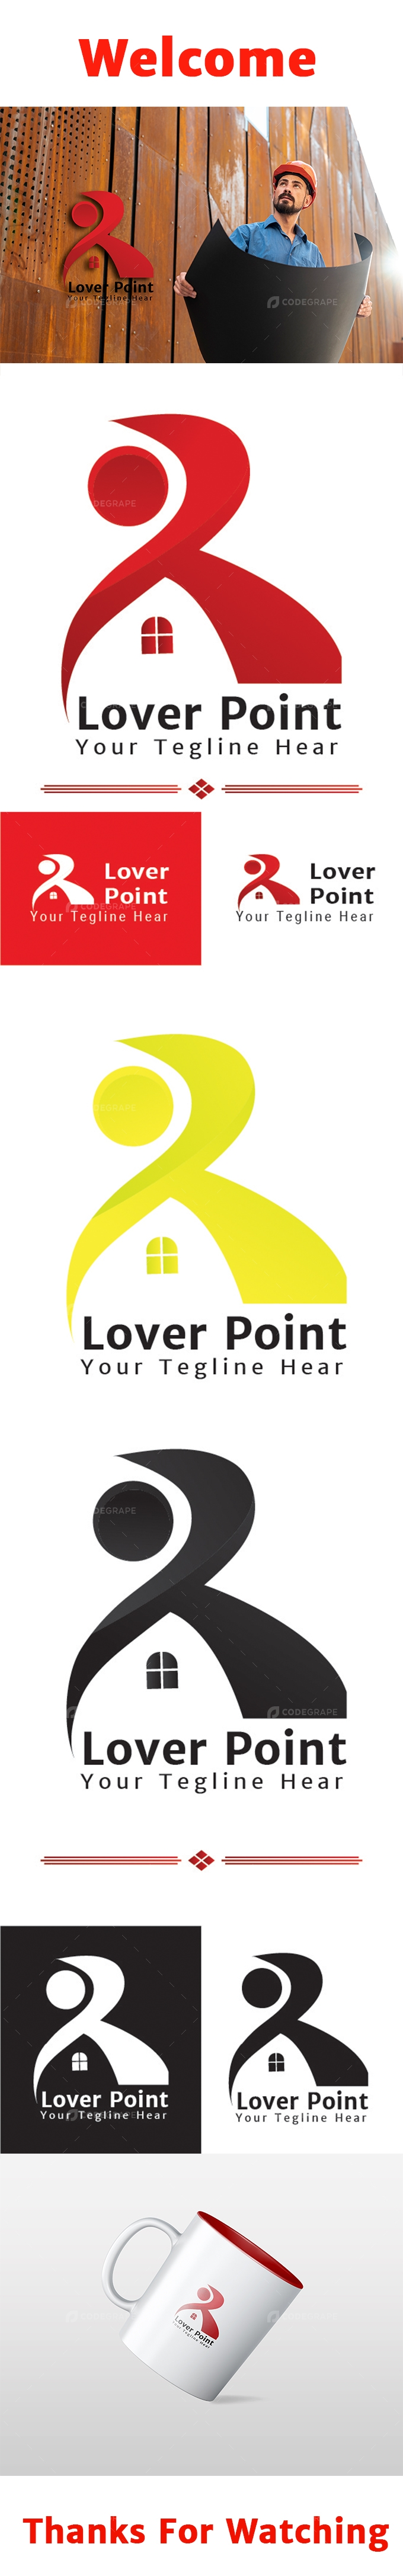 Lover Point Logo